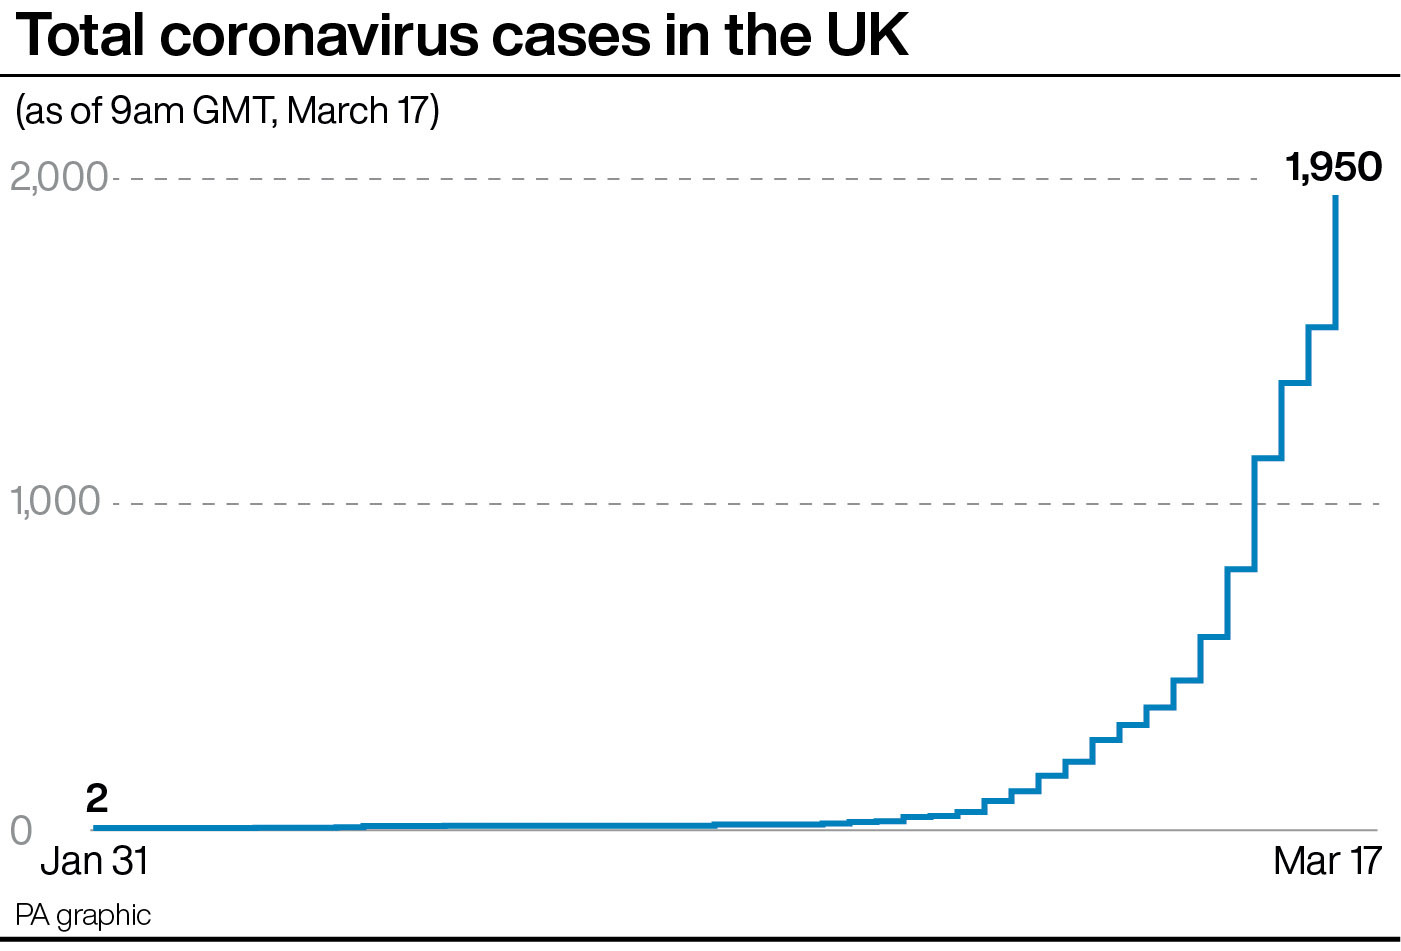 Coronavirus: Chancellor Announces £330bn Loans for Businesses, Mortgage Holidays